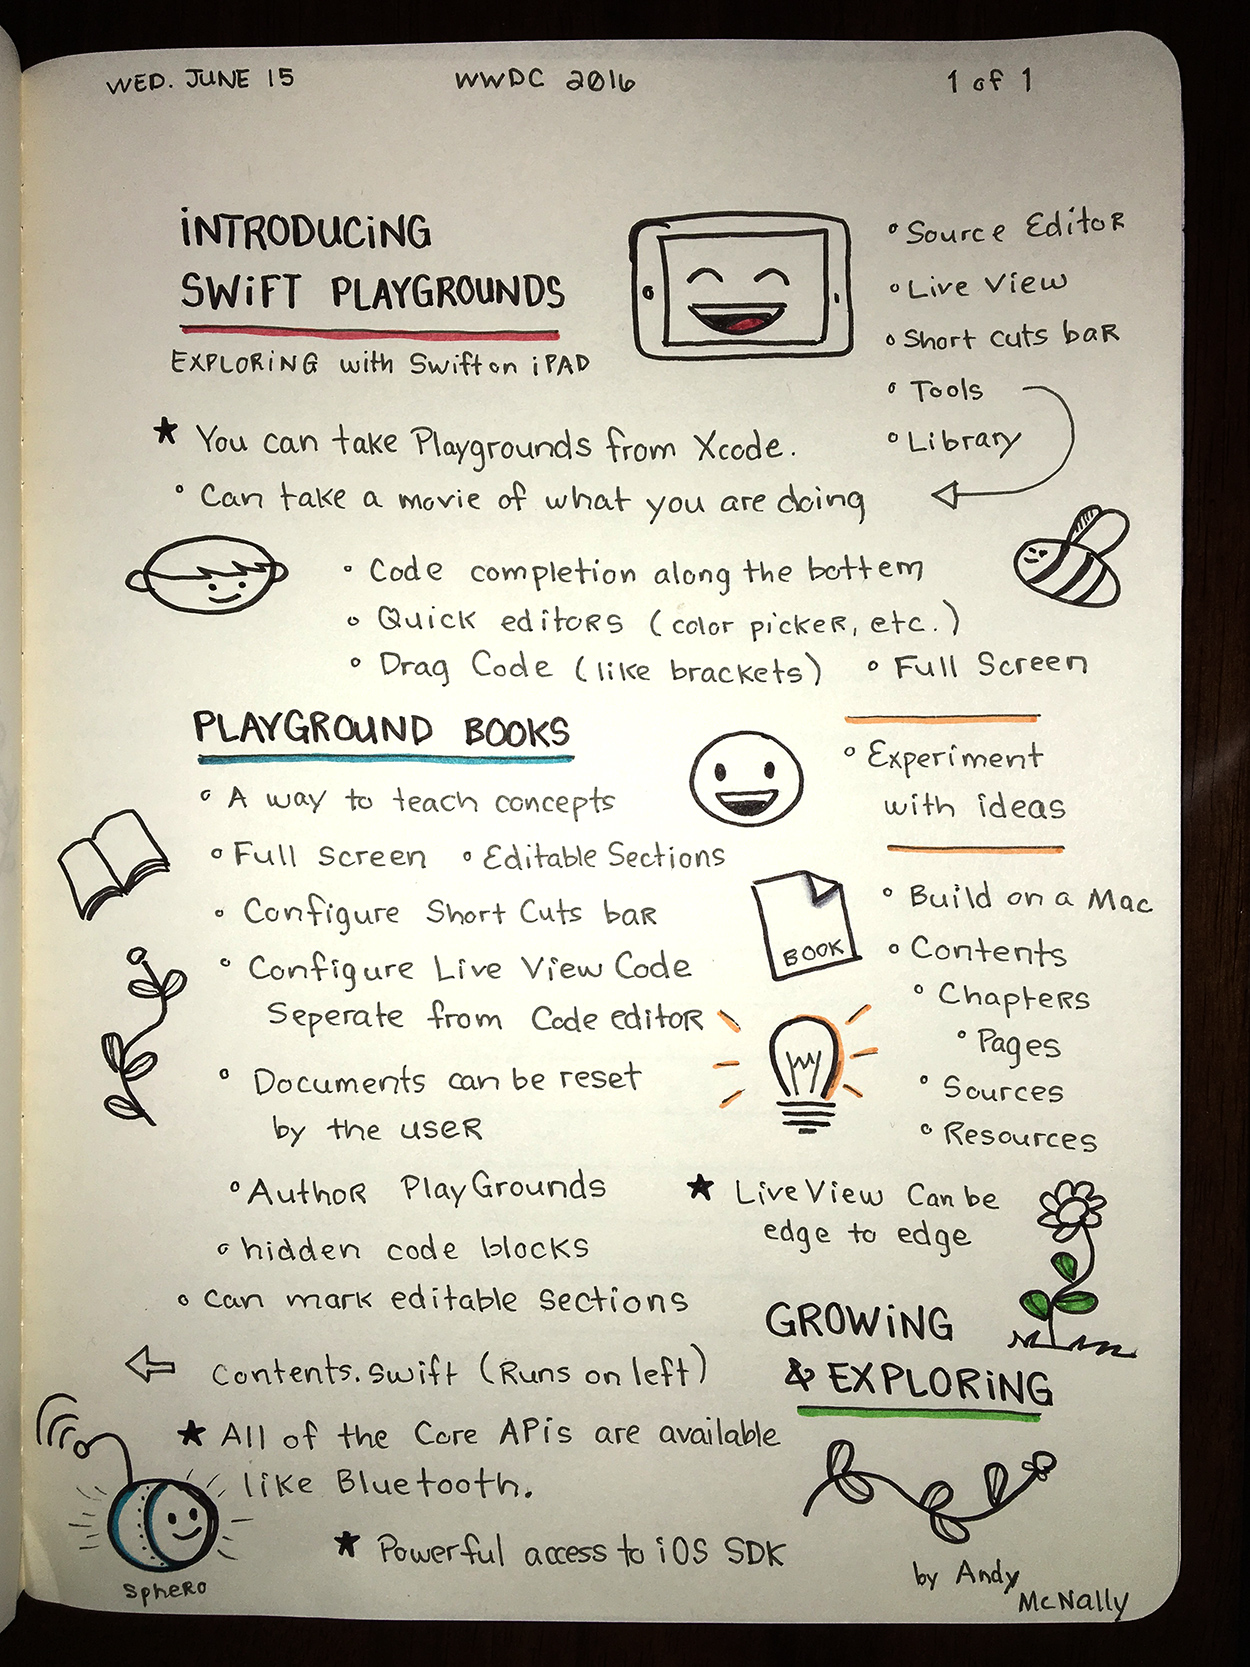 WWDC sketchnotes - Introducing Swift Playgrounds